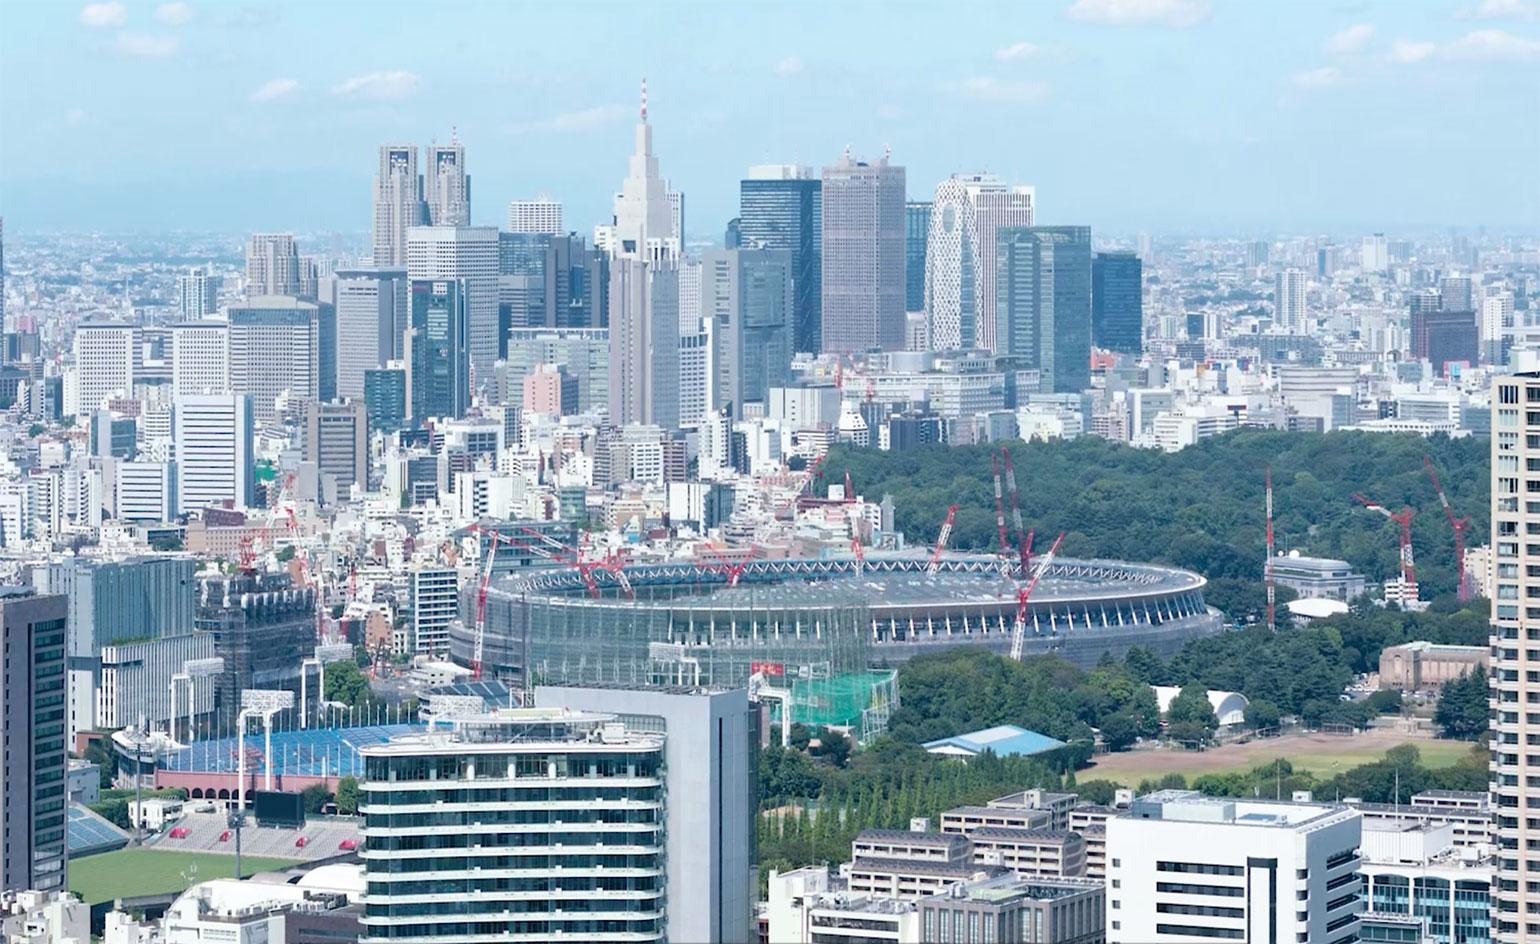 Tour Tokyo's development ahead of the 2020 Olympics with Atelier Bow-Wow